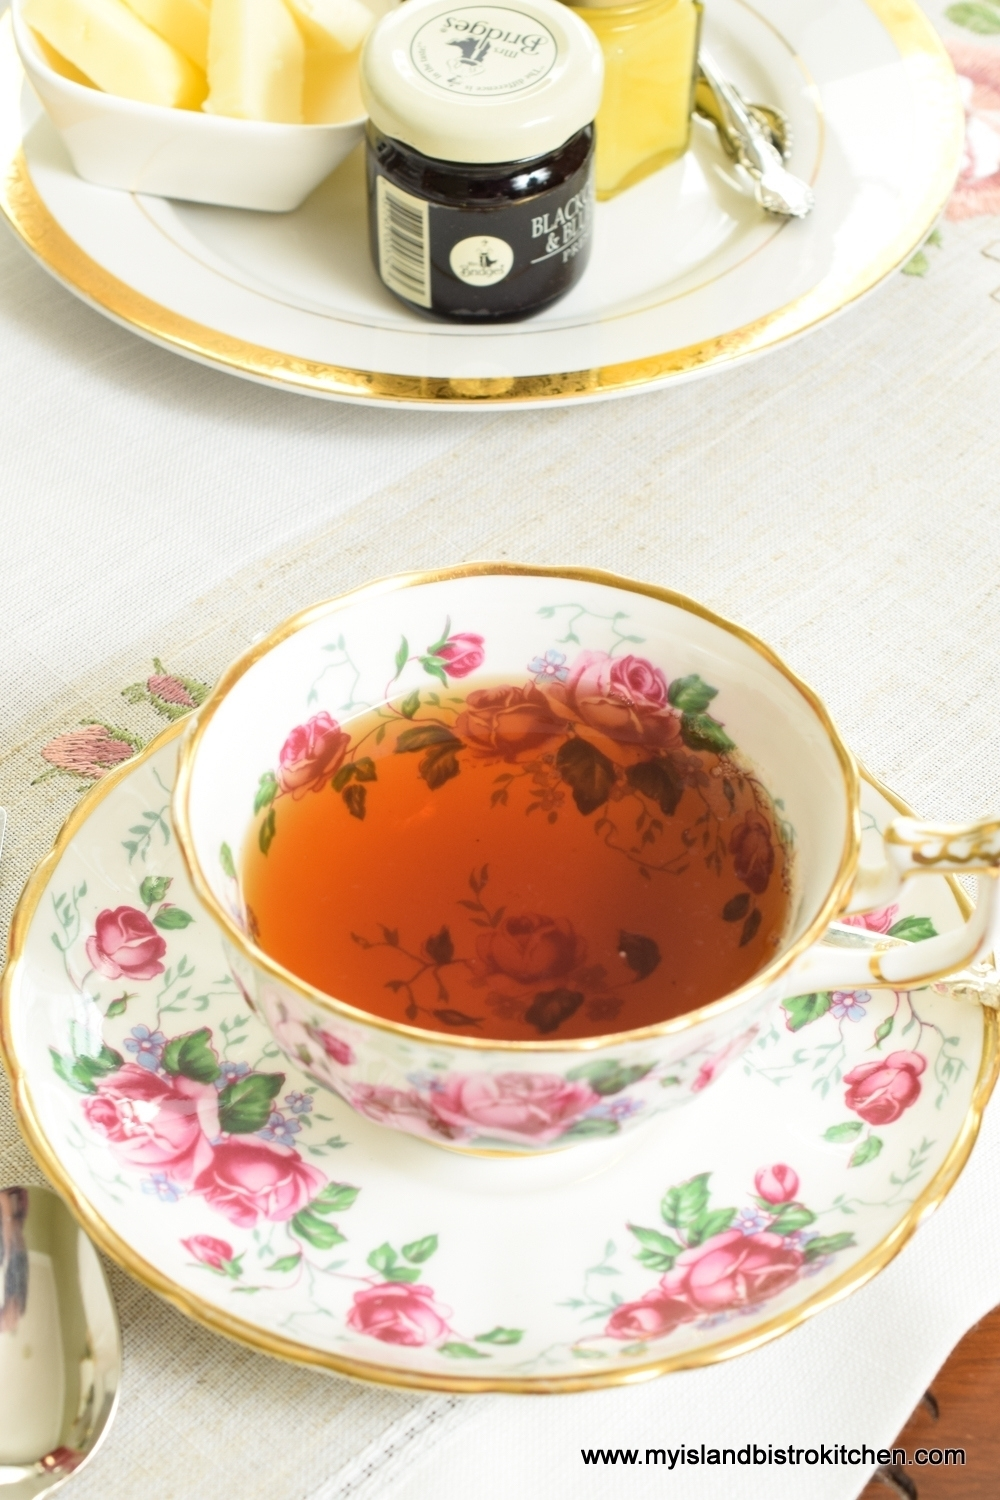 China Teacup and Saucer